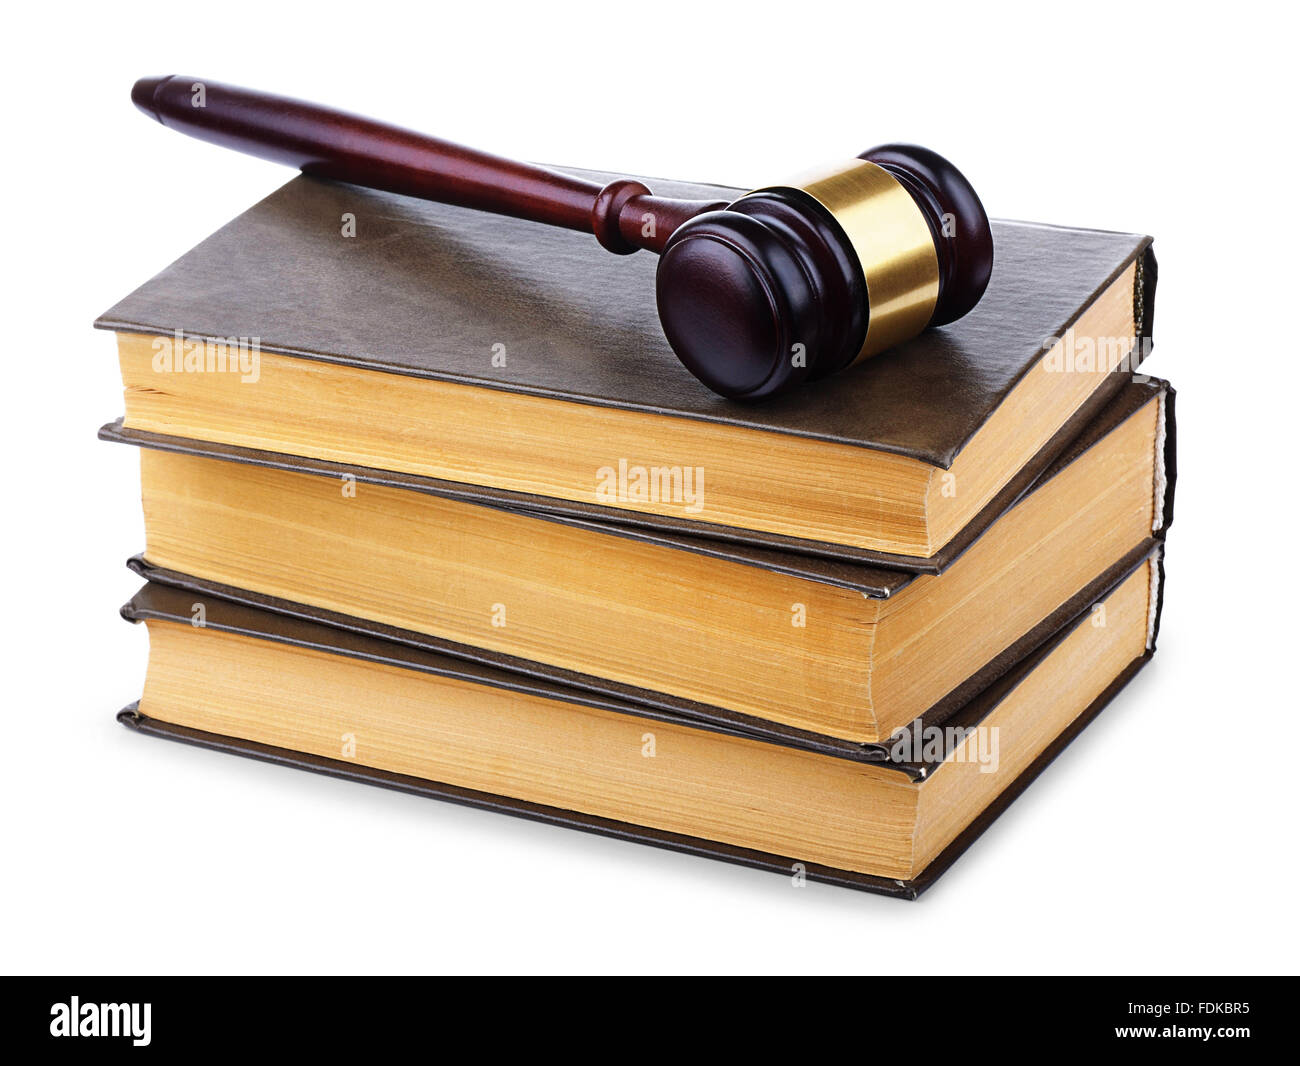 Wooden gavel and old law books on a white background - Stock Image